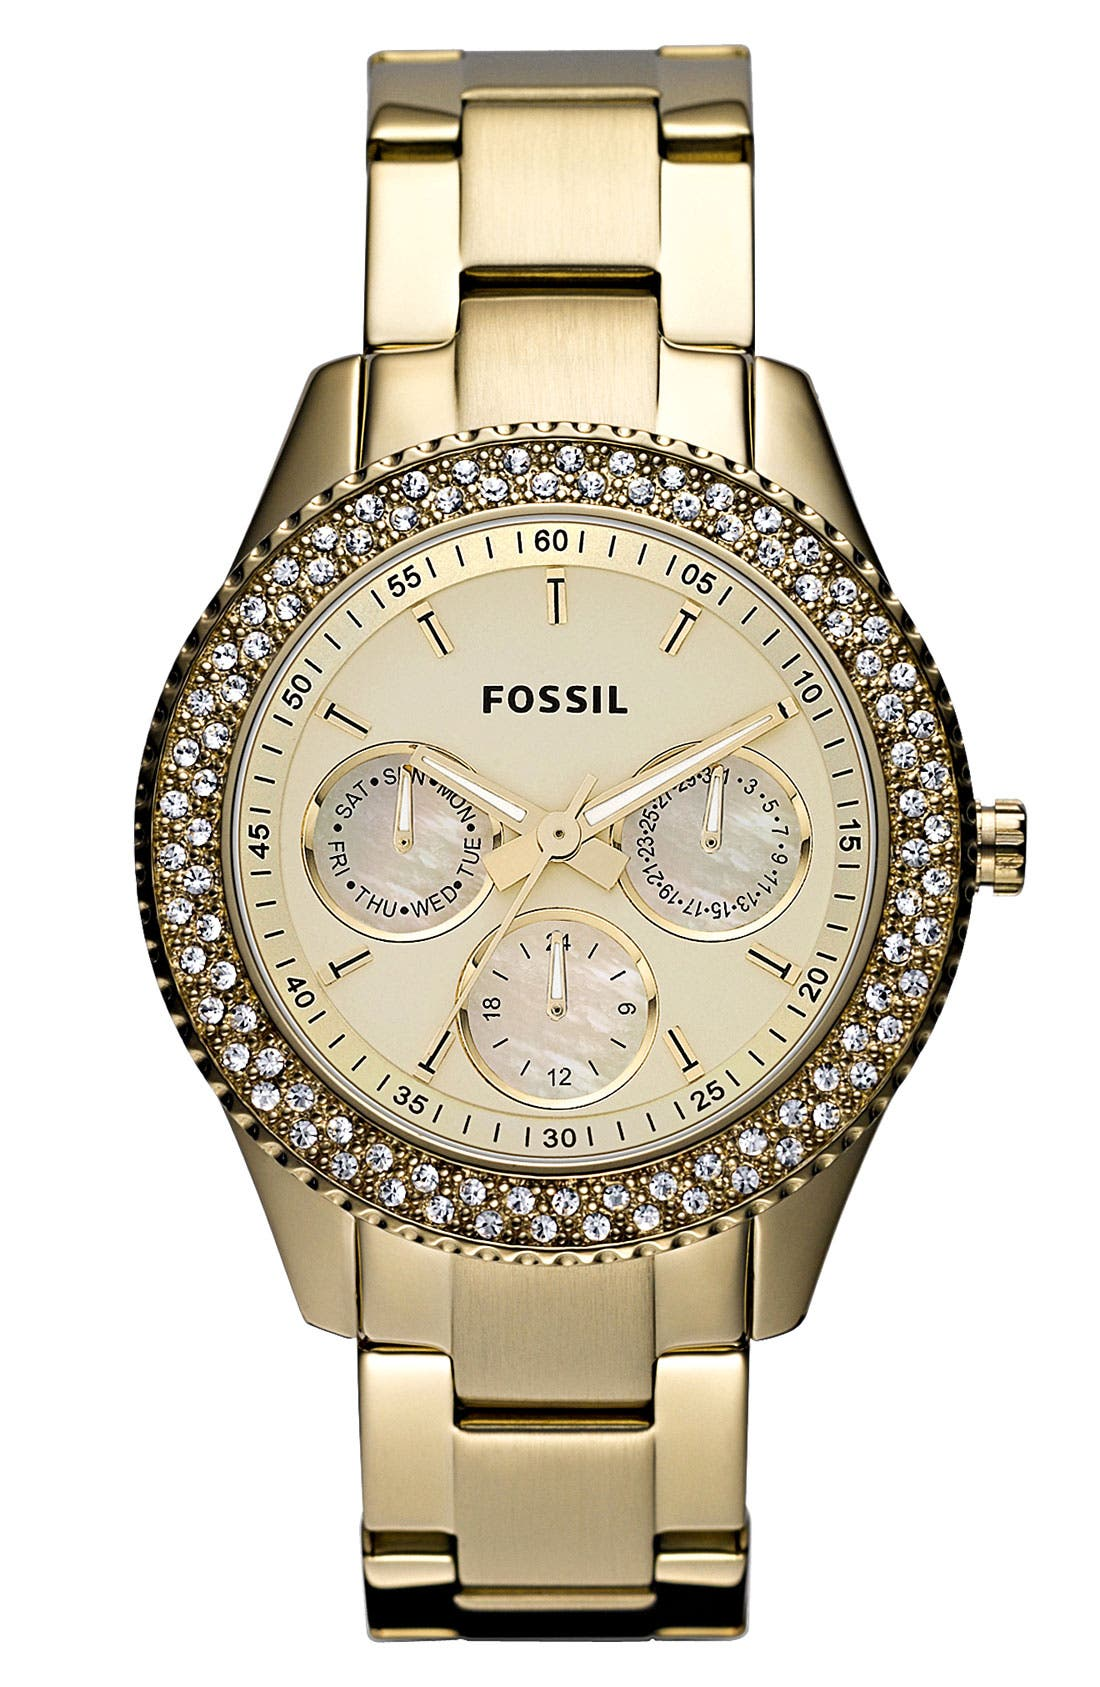 Main Image - Fossil 'Stella' Crystal Bezel Bracelet Watch, 37mm